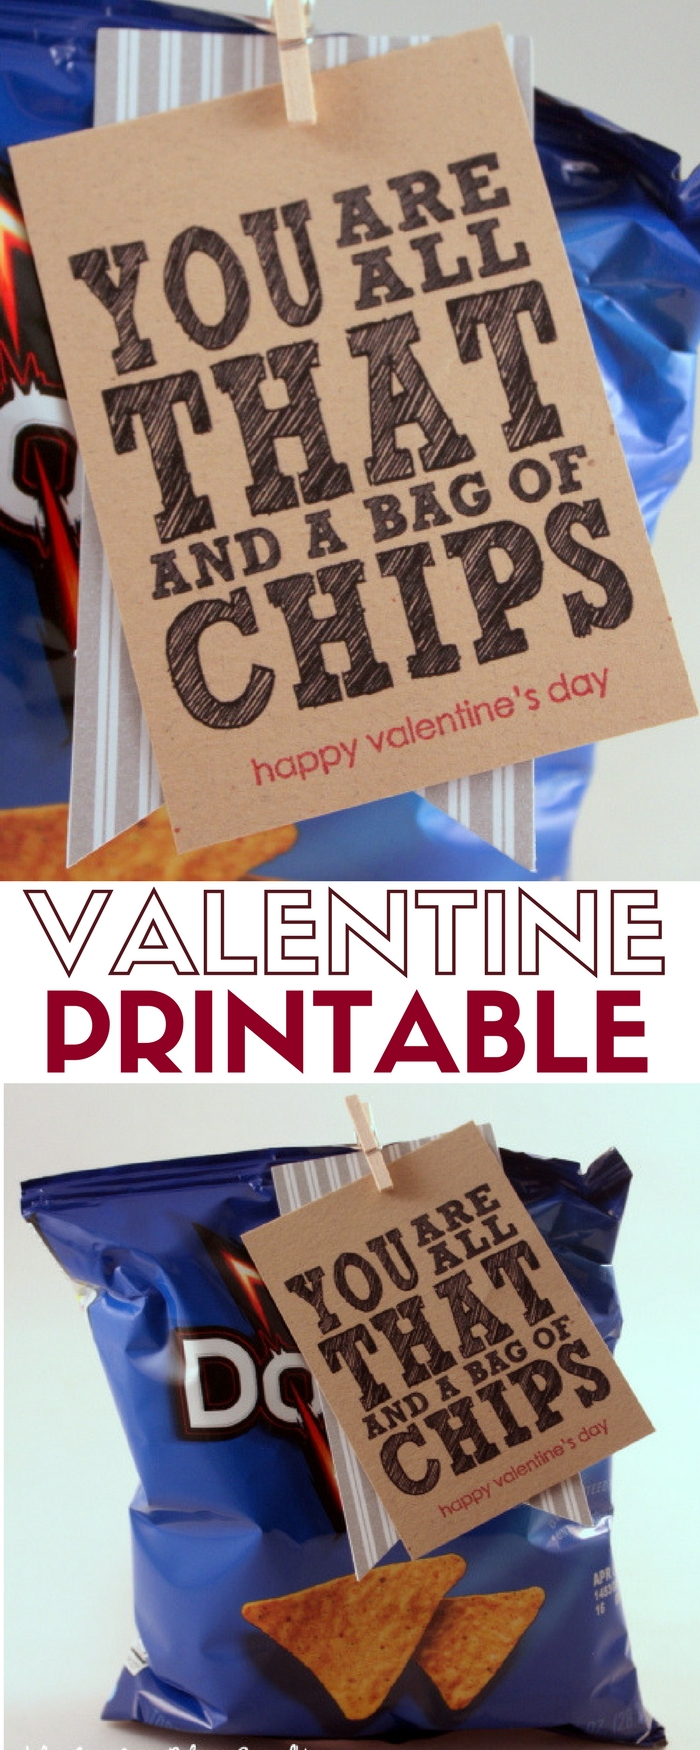 photograph regarding All That and a Bag of Chips Printable titled How in direction of Deliver Final Moment Valentine Printable The Cunning